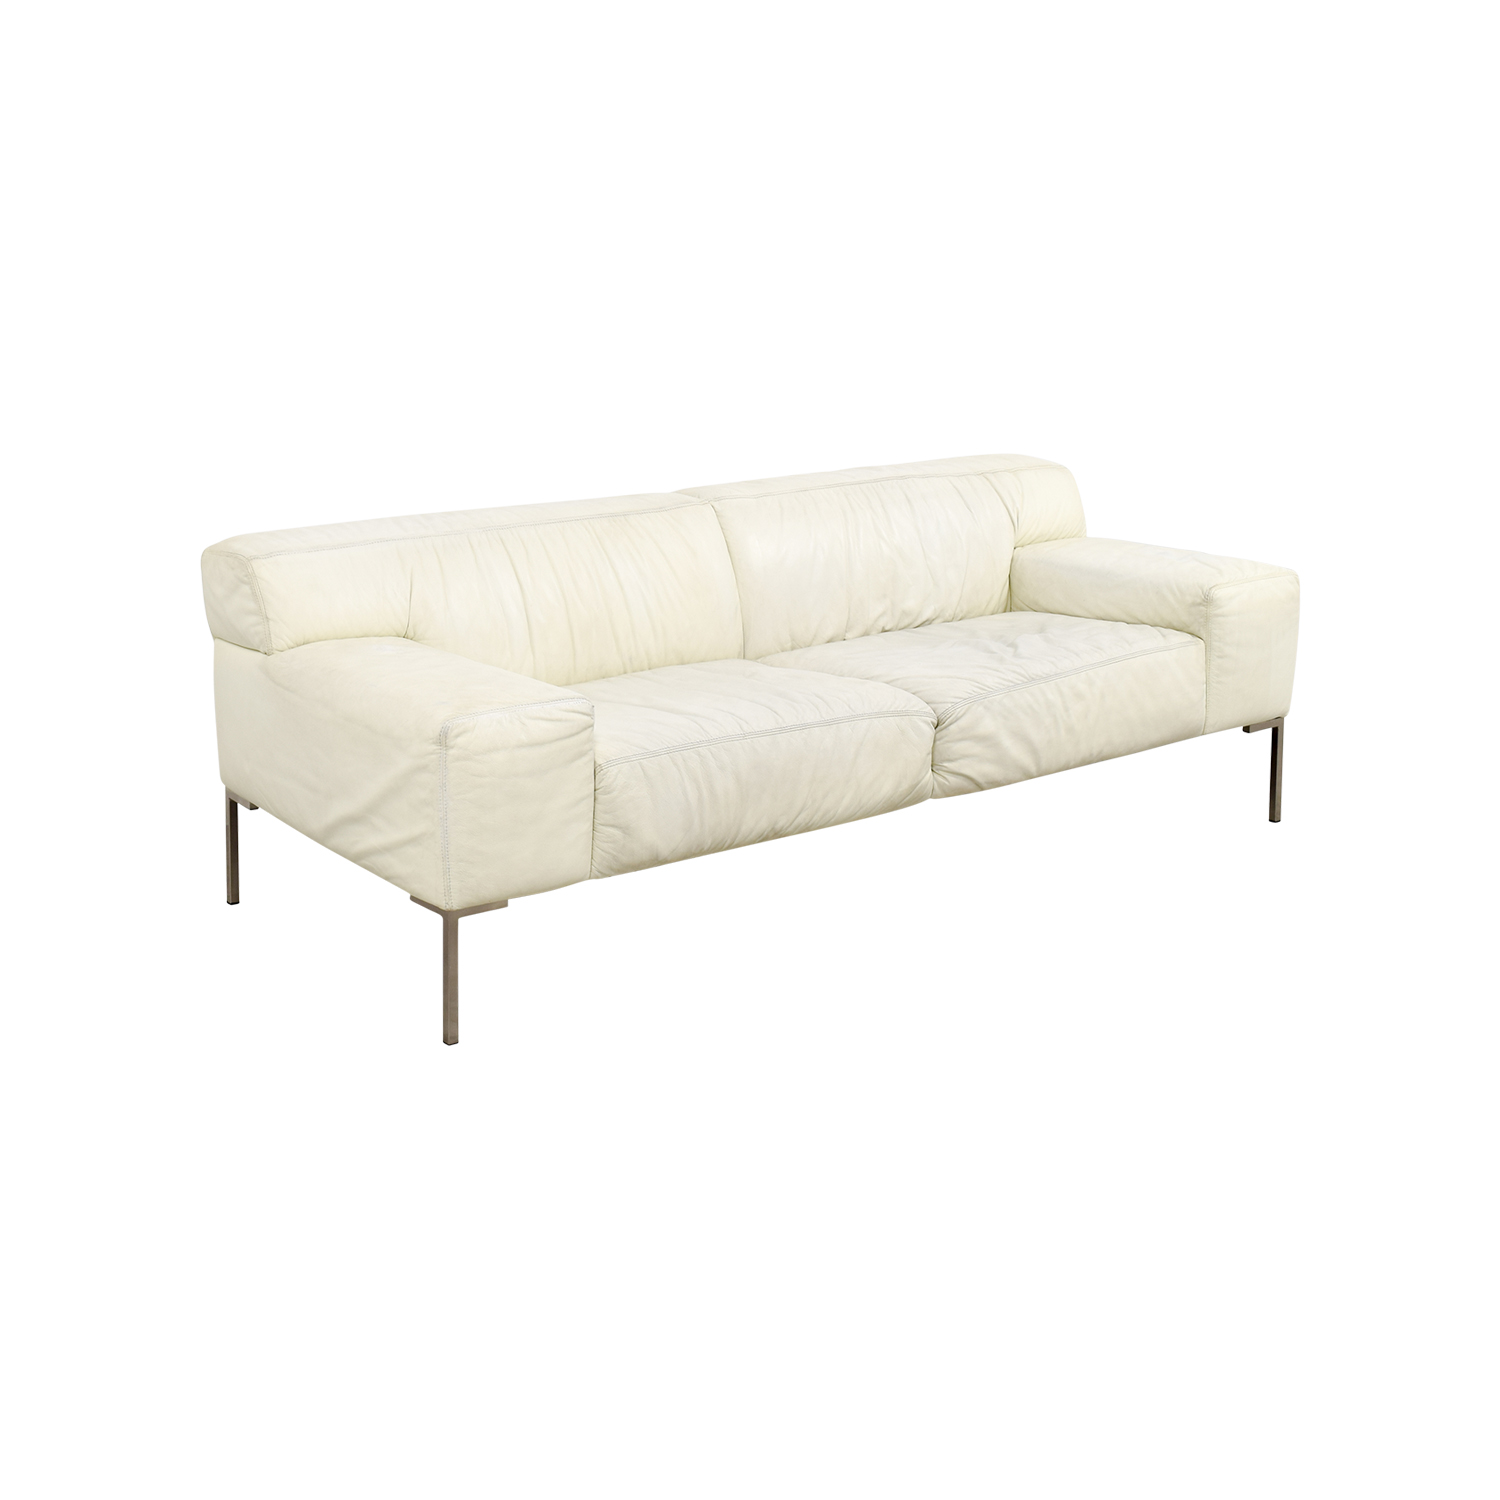 jensen lewis sleeper sofa price where can i buy cheap 90 off american leather